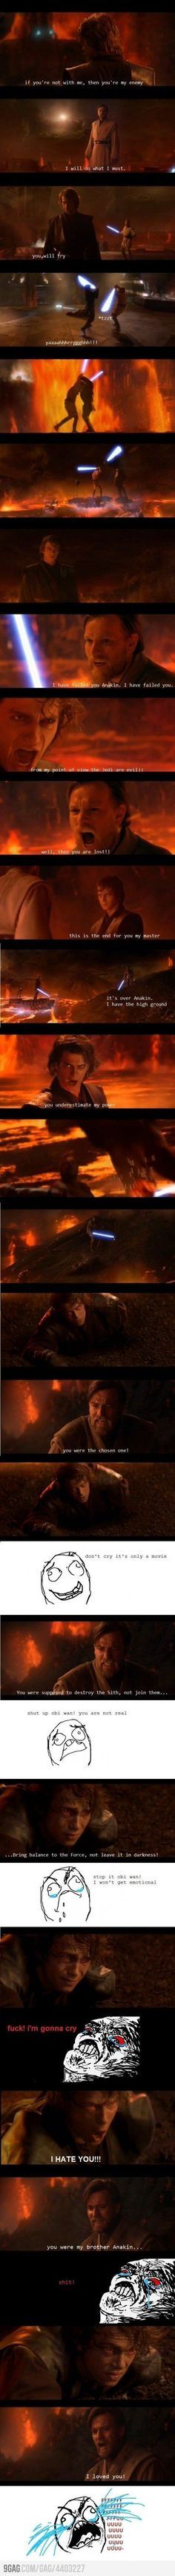 I cried even while reading this... Obi Wan vs. Anakin